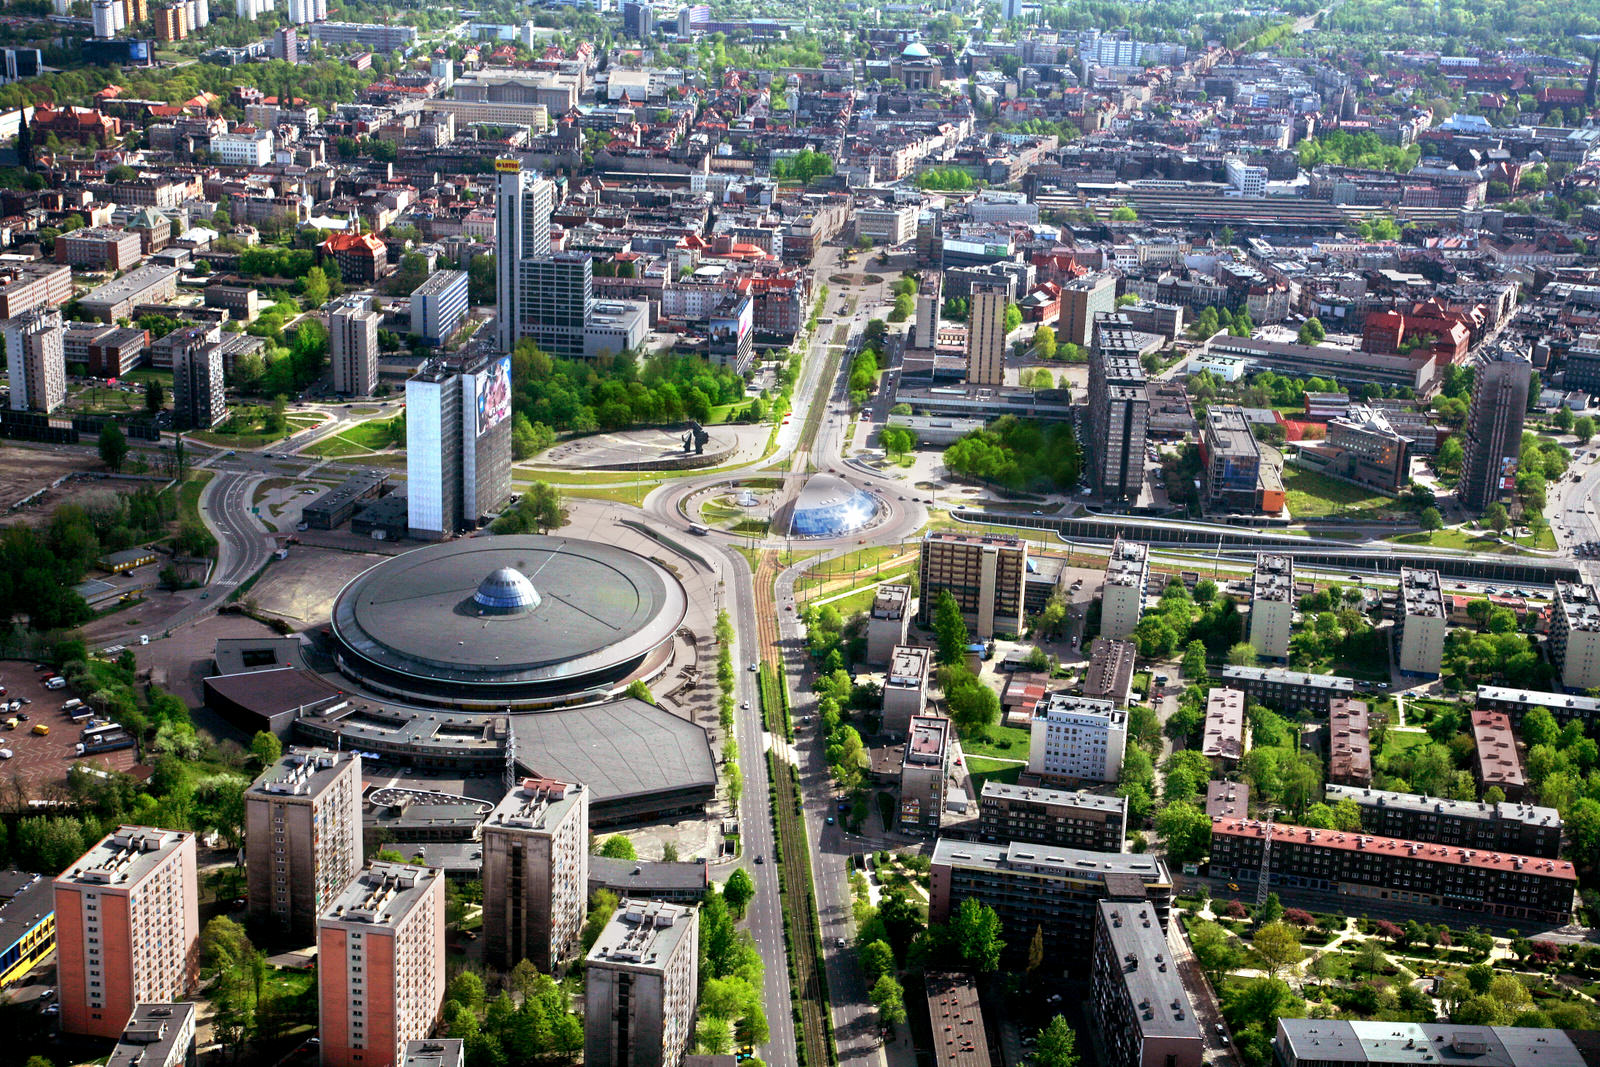 http://upload.wikimedia.org/wikipedia/commons/e/e7/Katowice.jpg